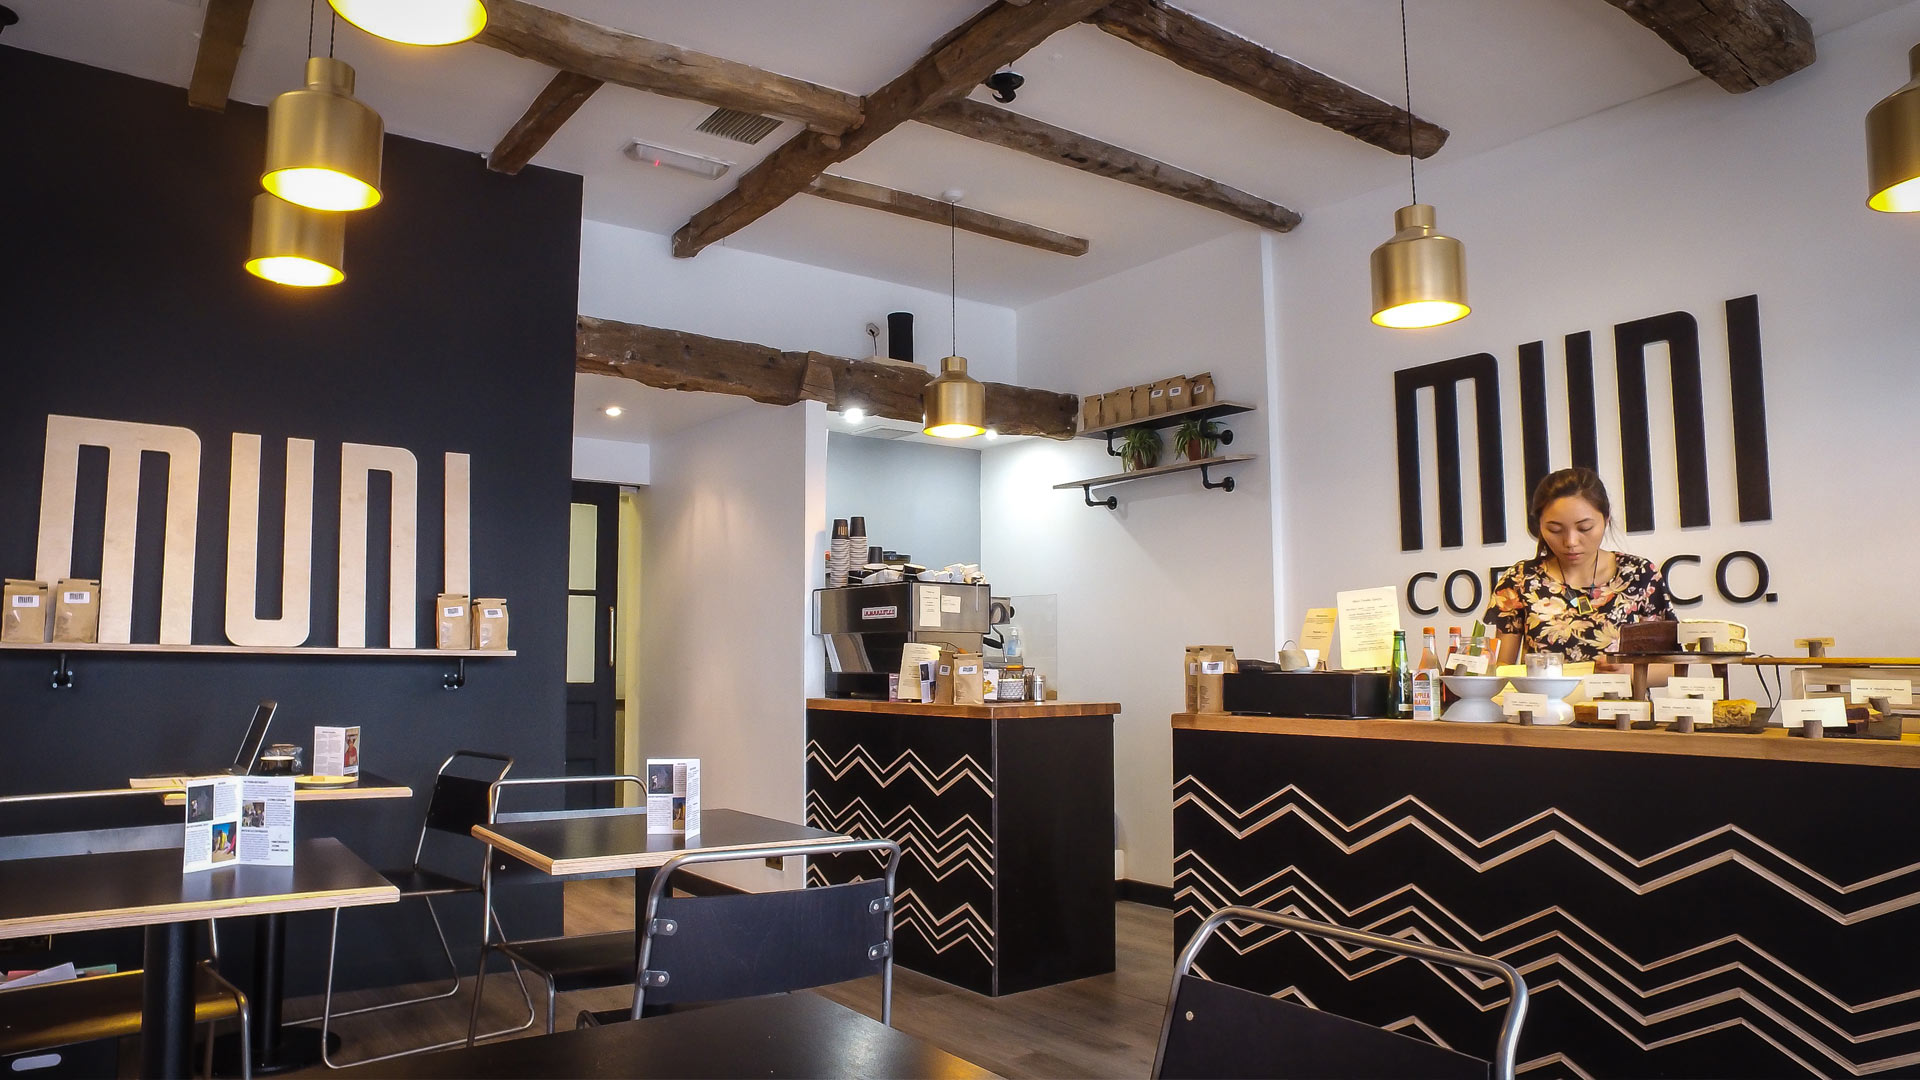 Muni coffee shop brand experience design liqui design Interior design stores london